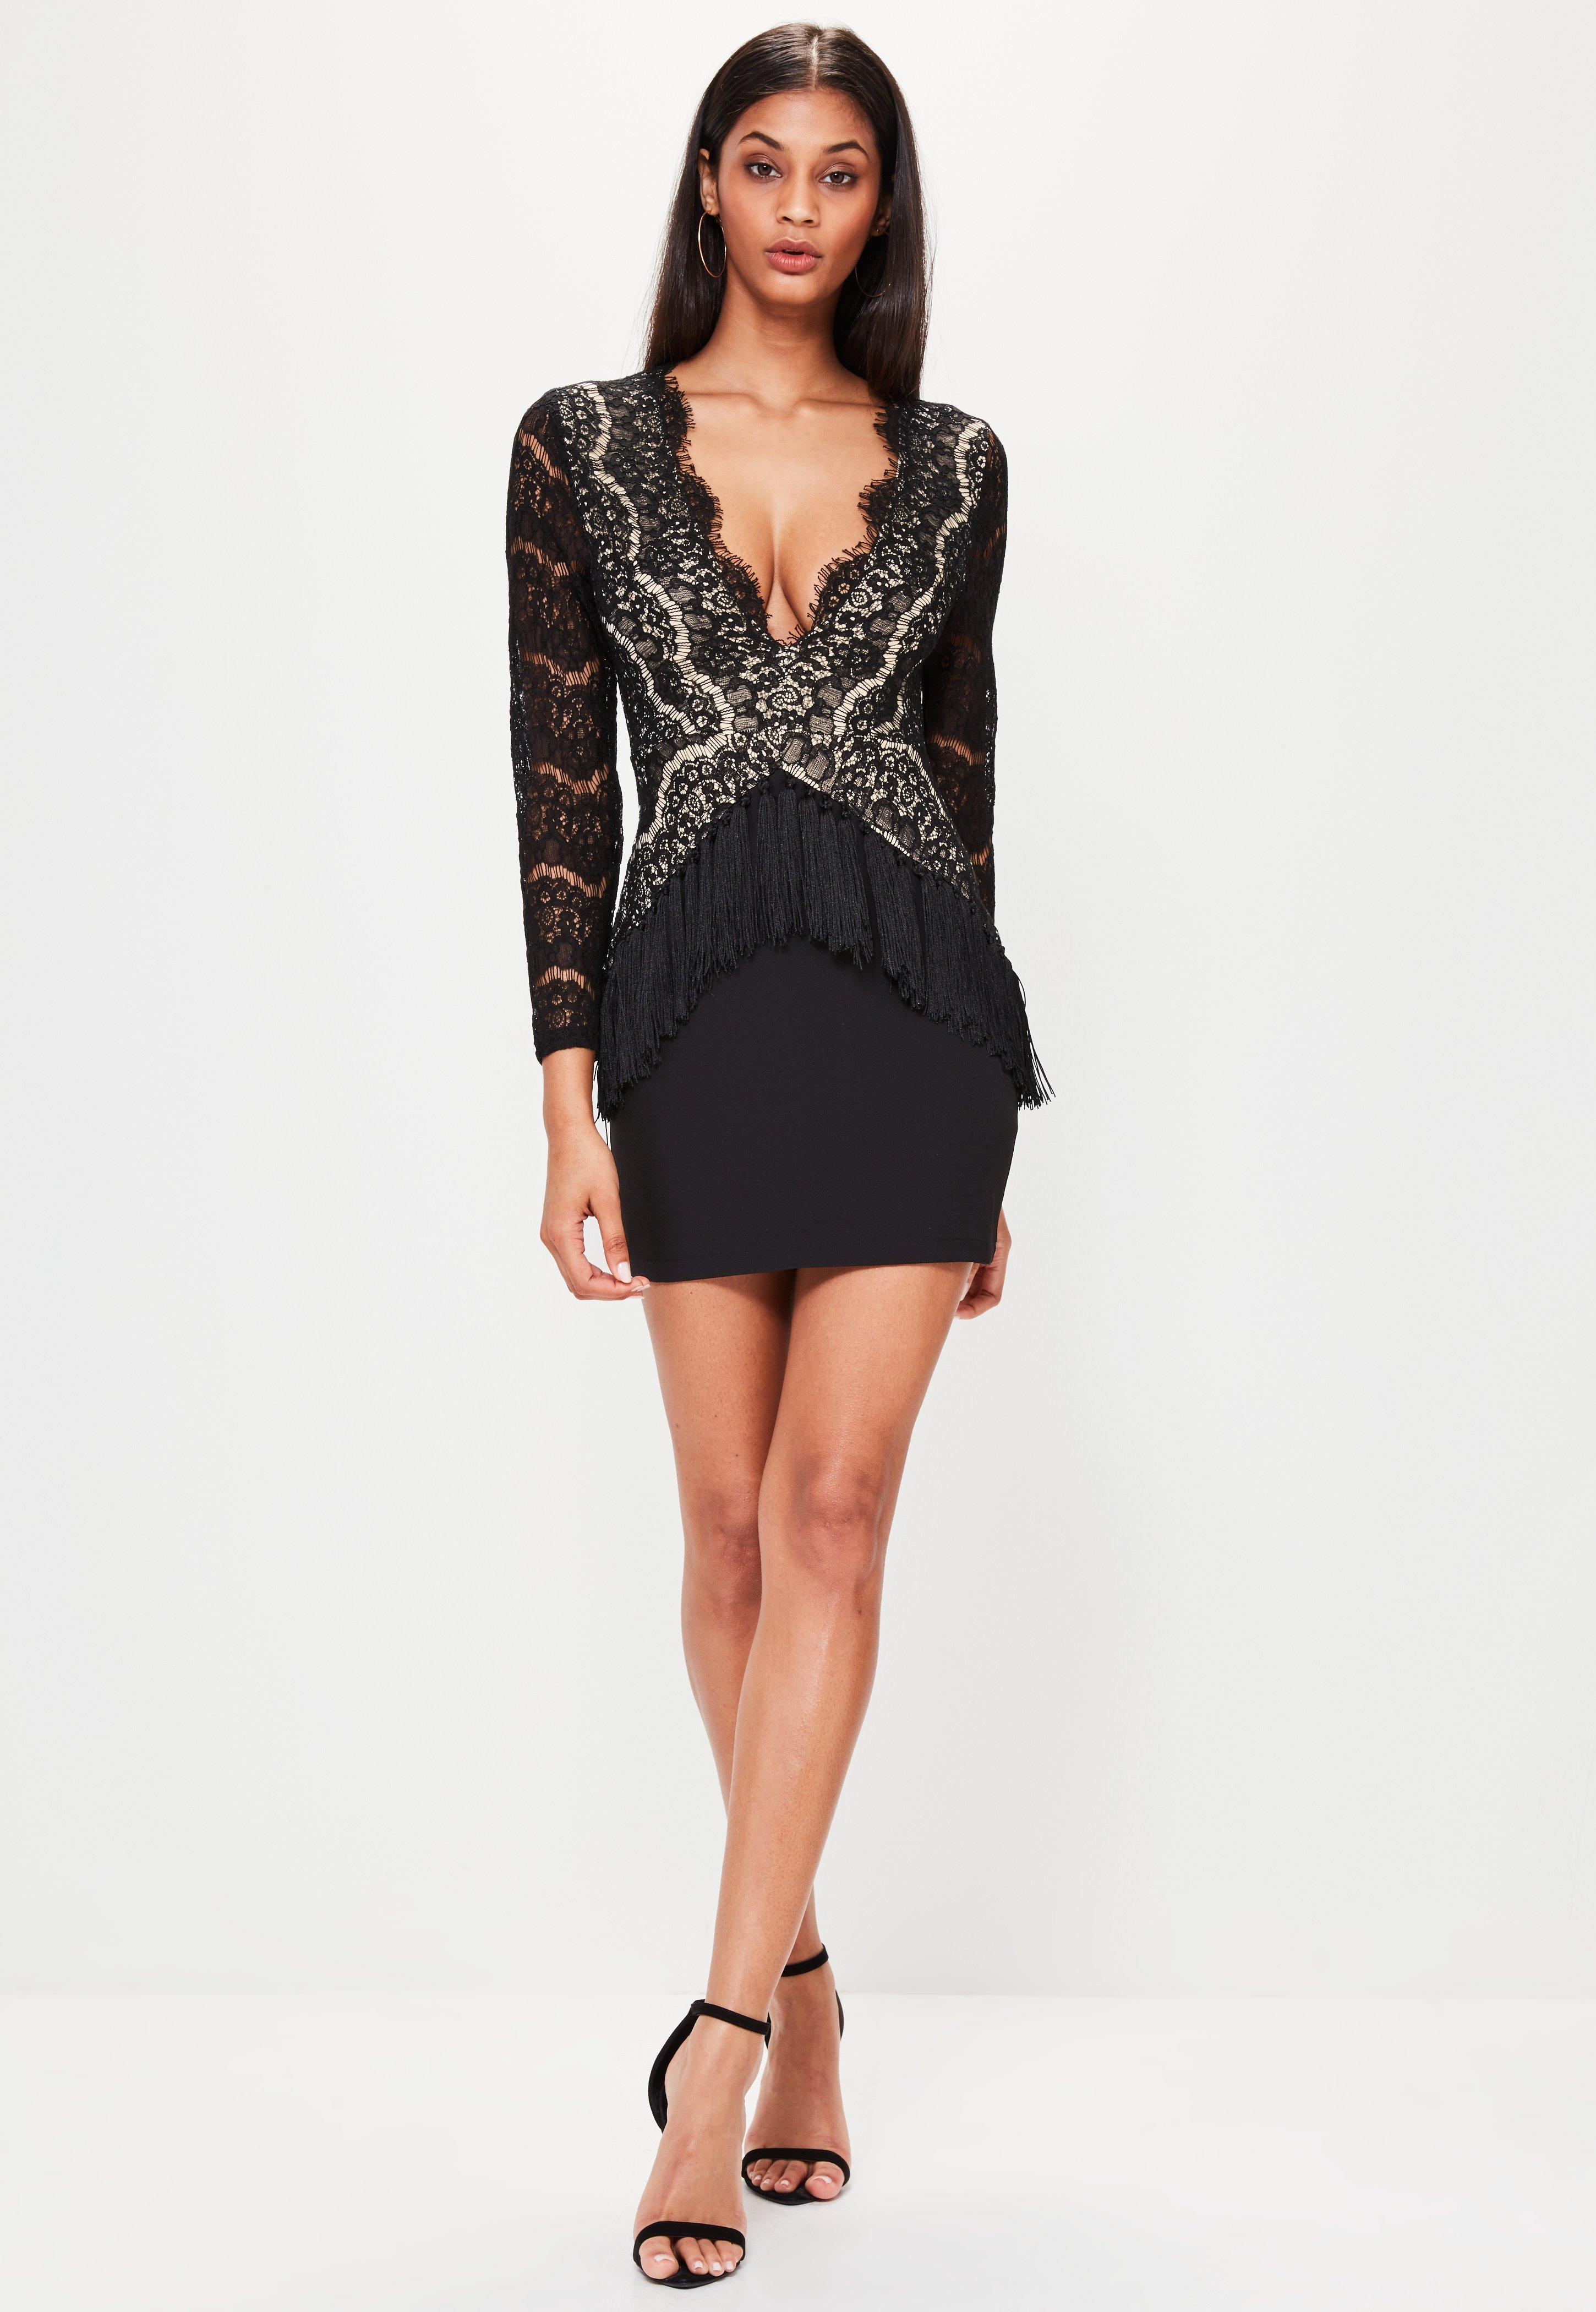 Wedding Long Sleeve Lace Dresses lace dresses white red black missguided plunge long sleeve bodycon dress